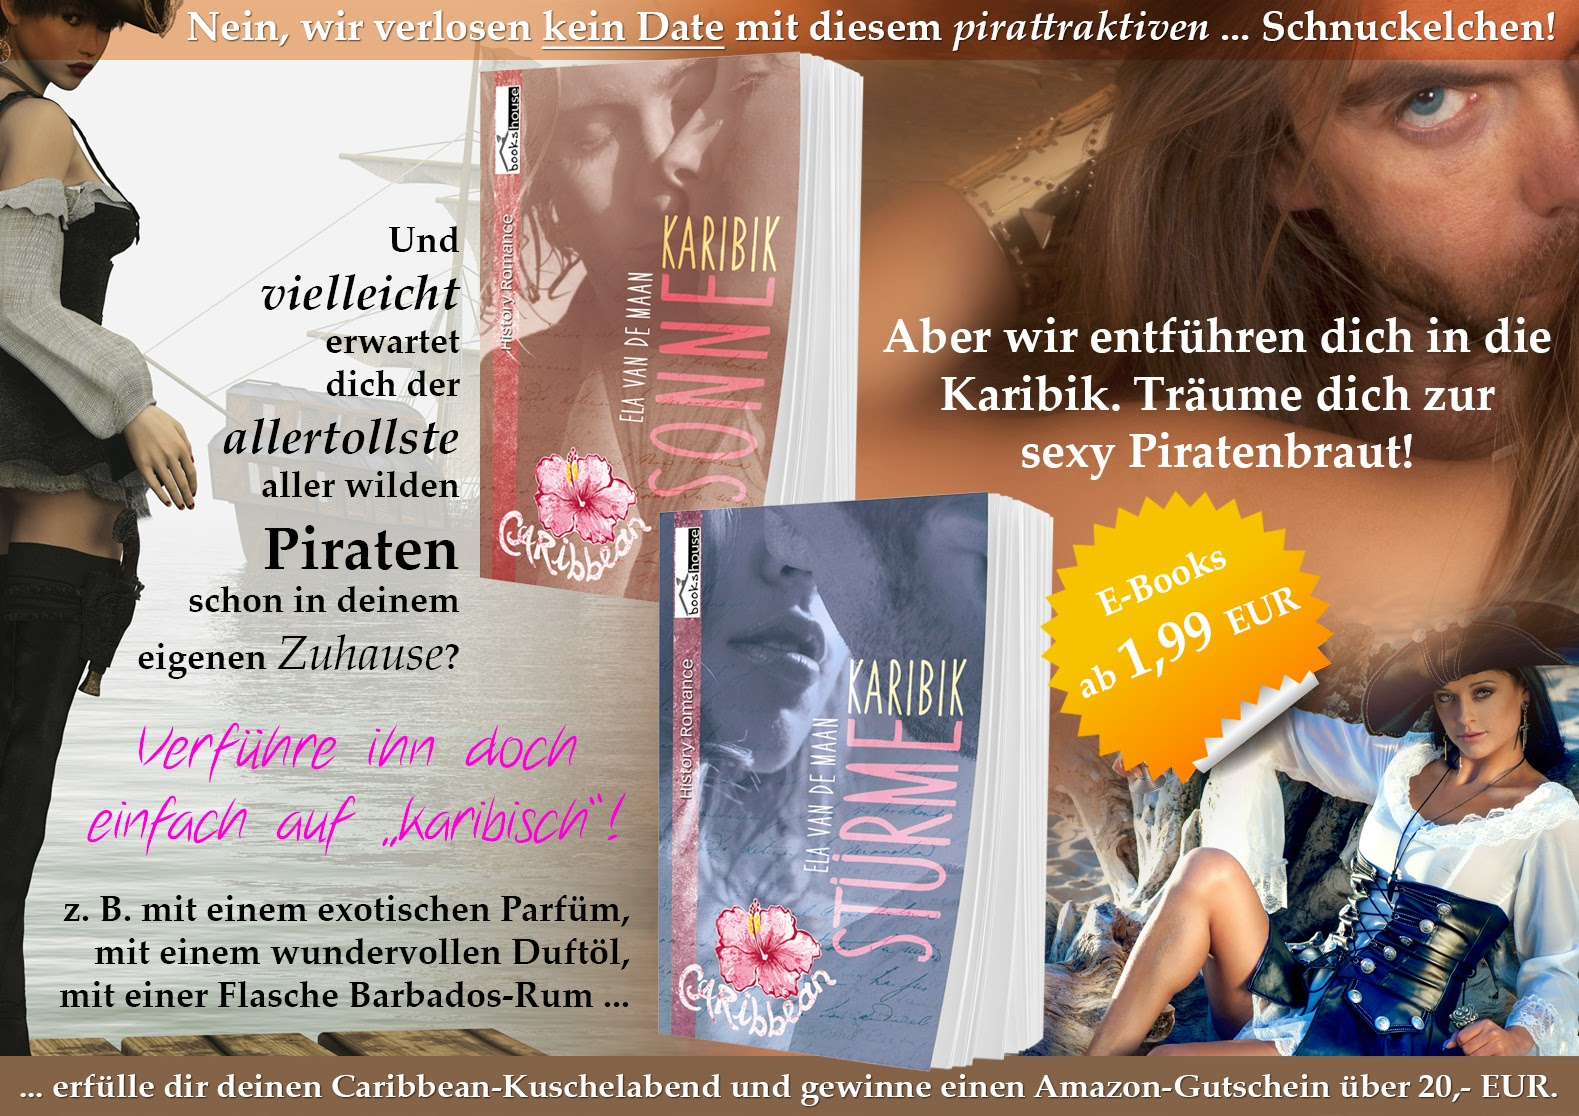 https://www.facebook.com/bookshouse.verlag/photos/a.244393132344435.52584.223151867801895/730547603728983/?type=1&theater